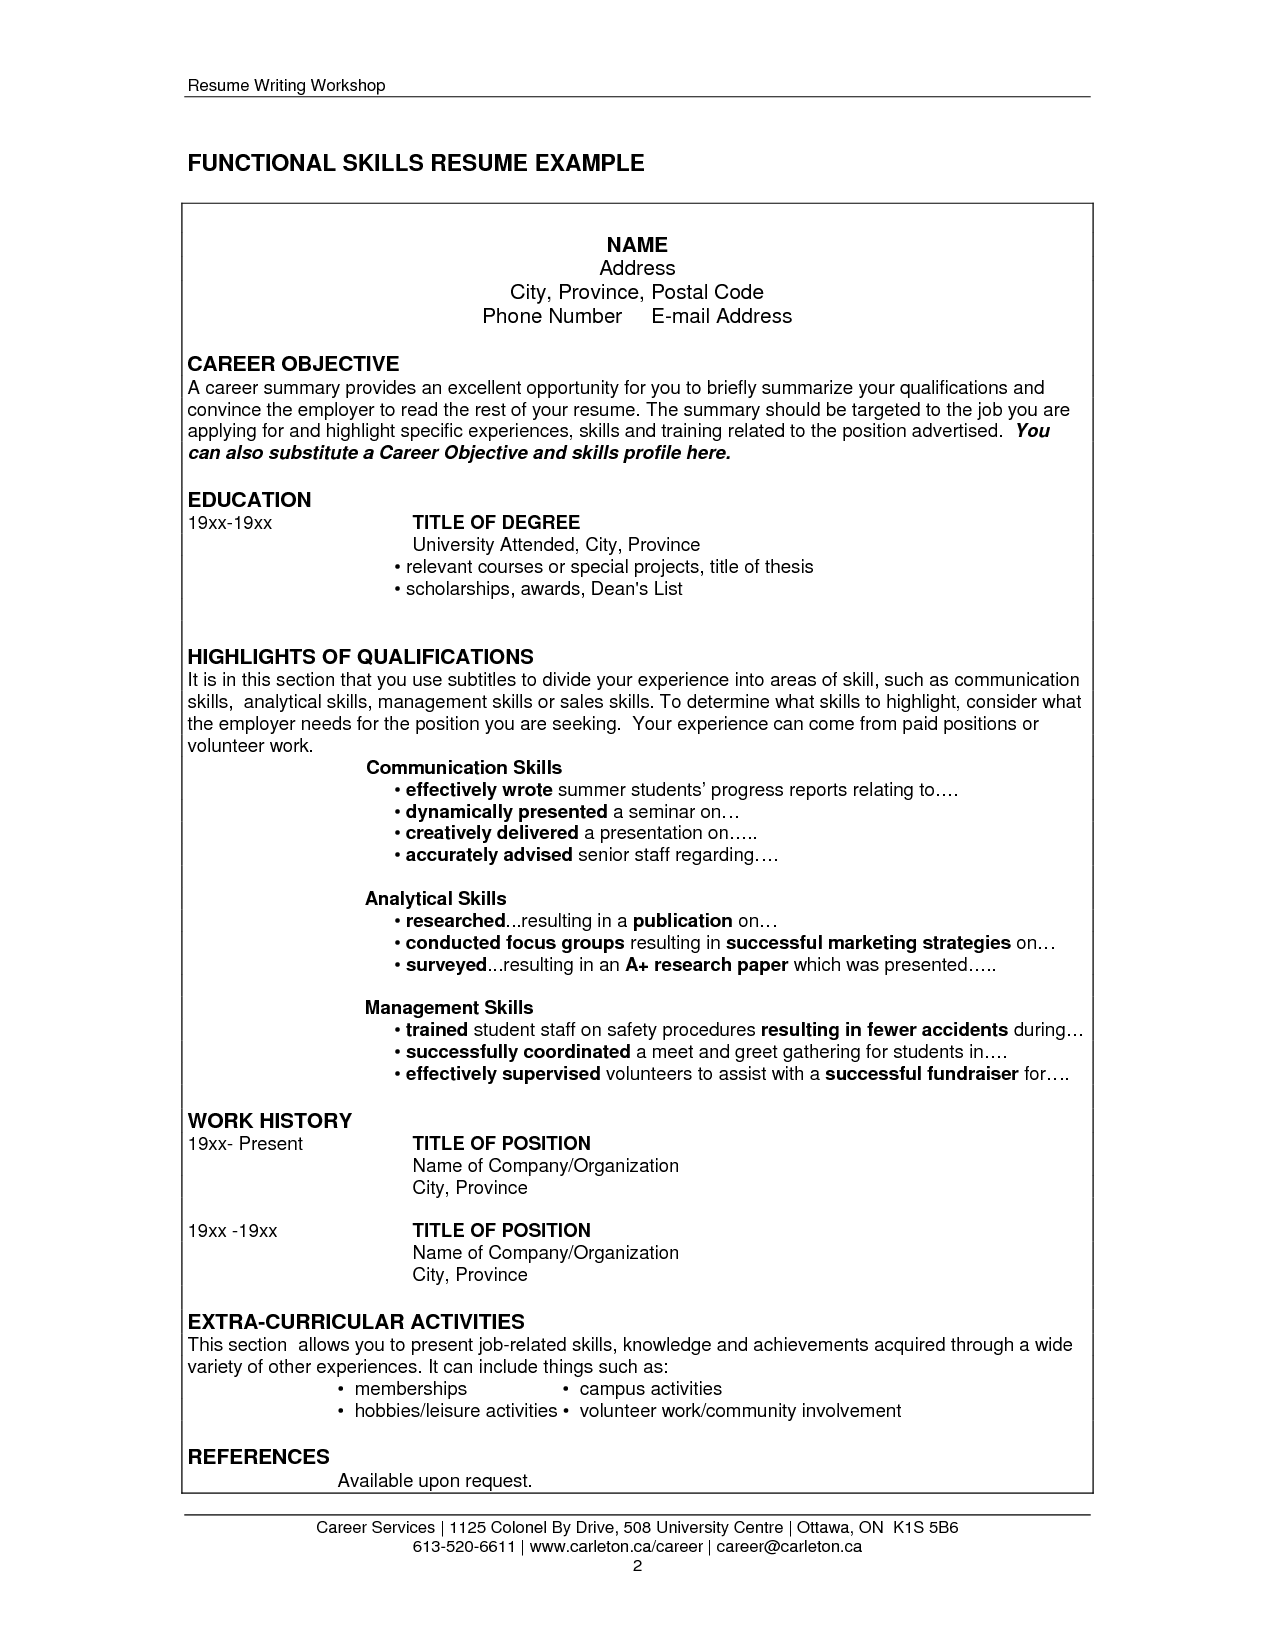 Job Skills On Resume Image Result For Skills Resume Format  Business  Pinterest .